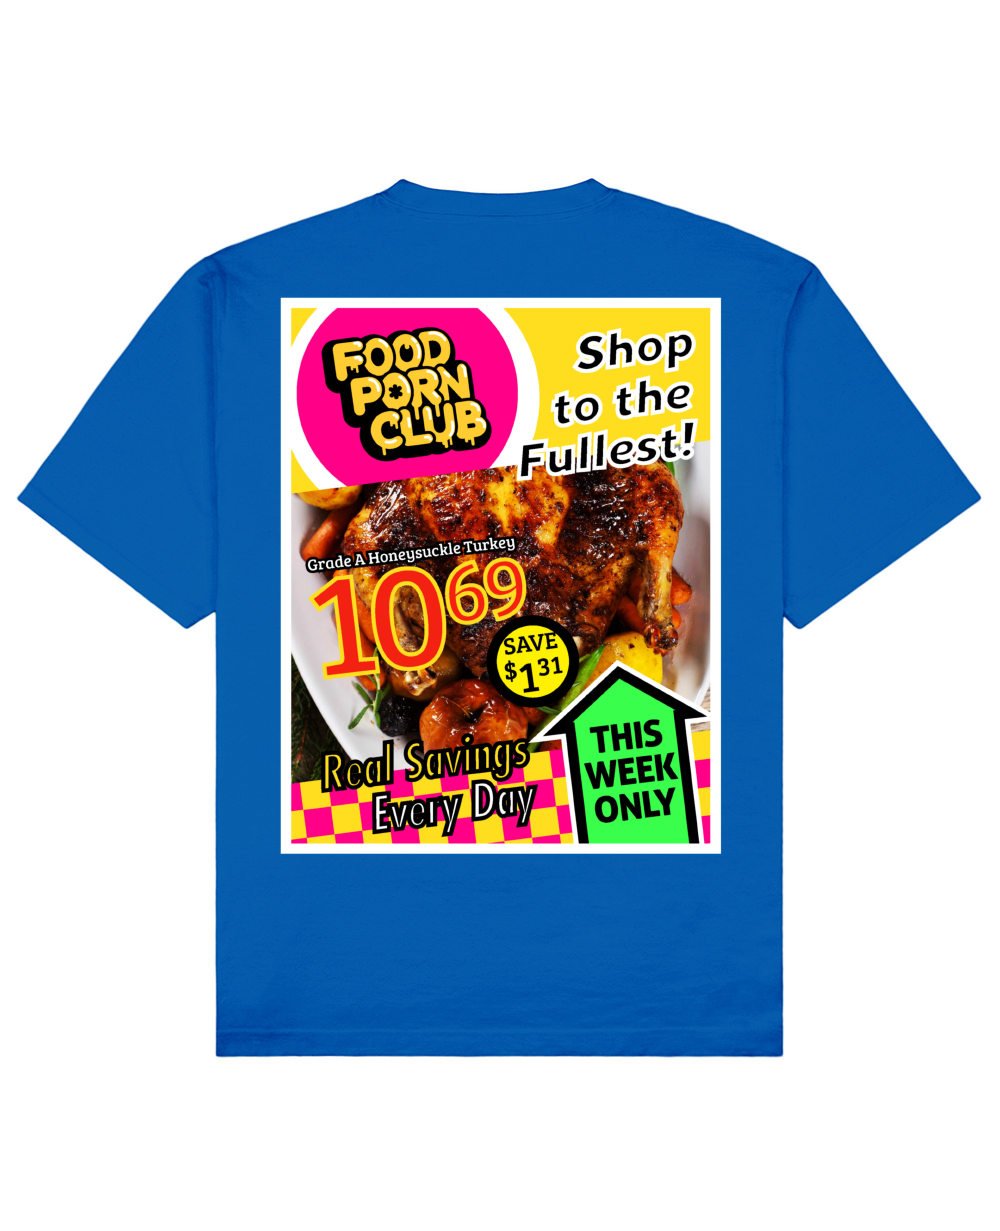 Catalog Print T-Shirt in Blue - T-Shirts - FOOD PORN CLUB - BRANMA